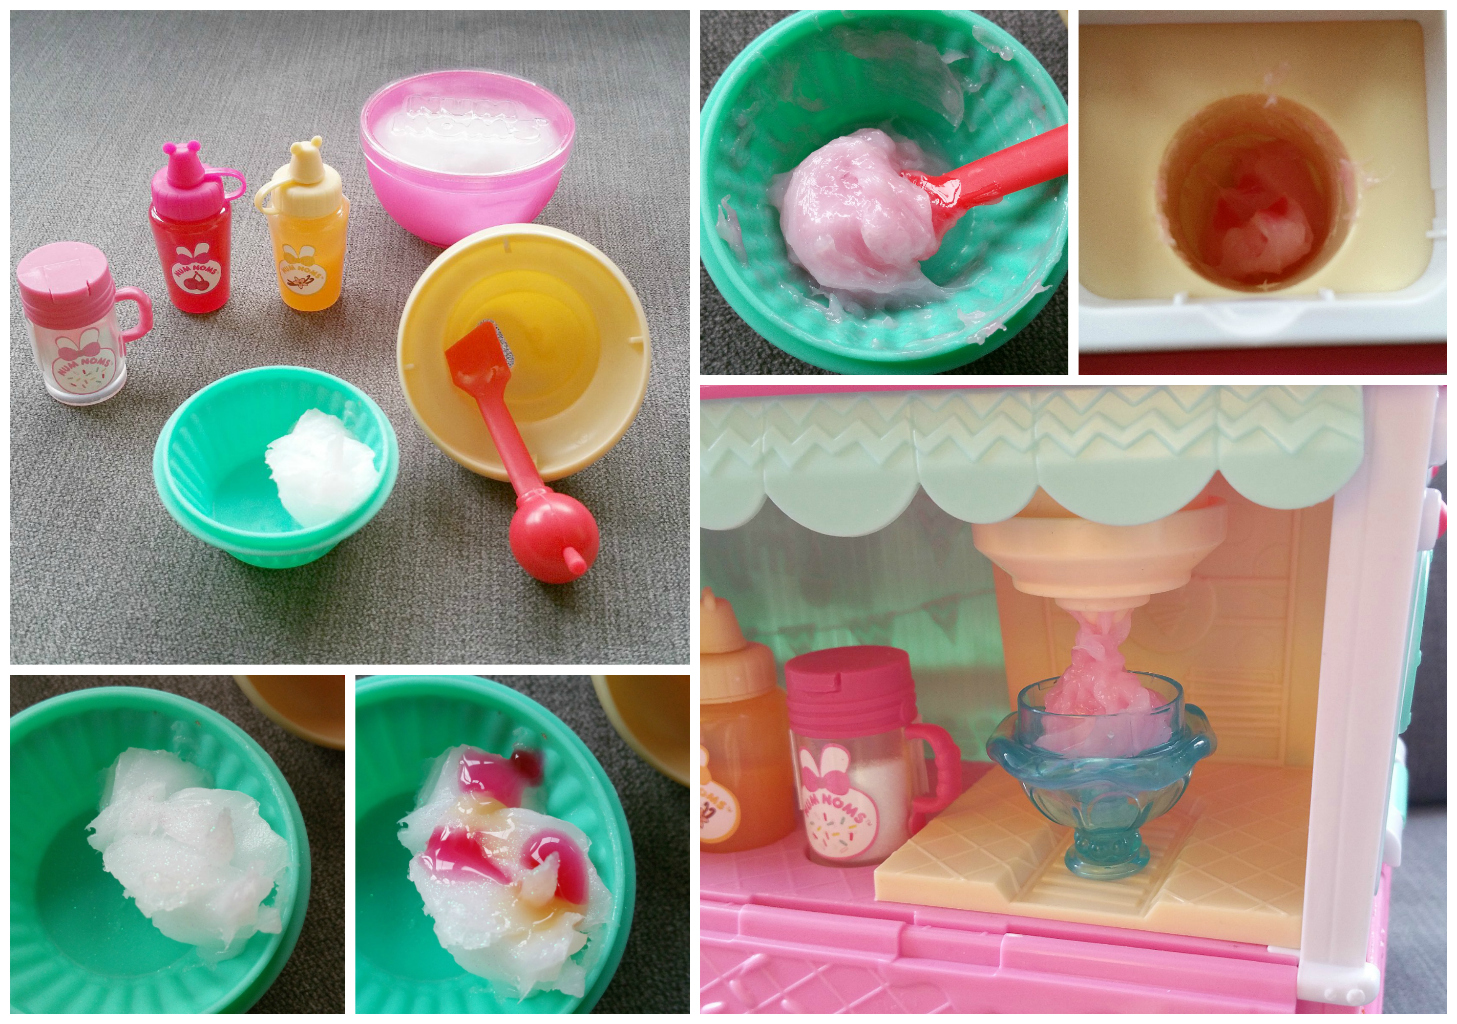 Num Noms Lip Gloss Truck, Lip Gloss making for children, Num Noms Play Set